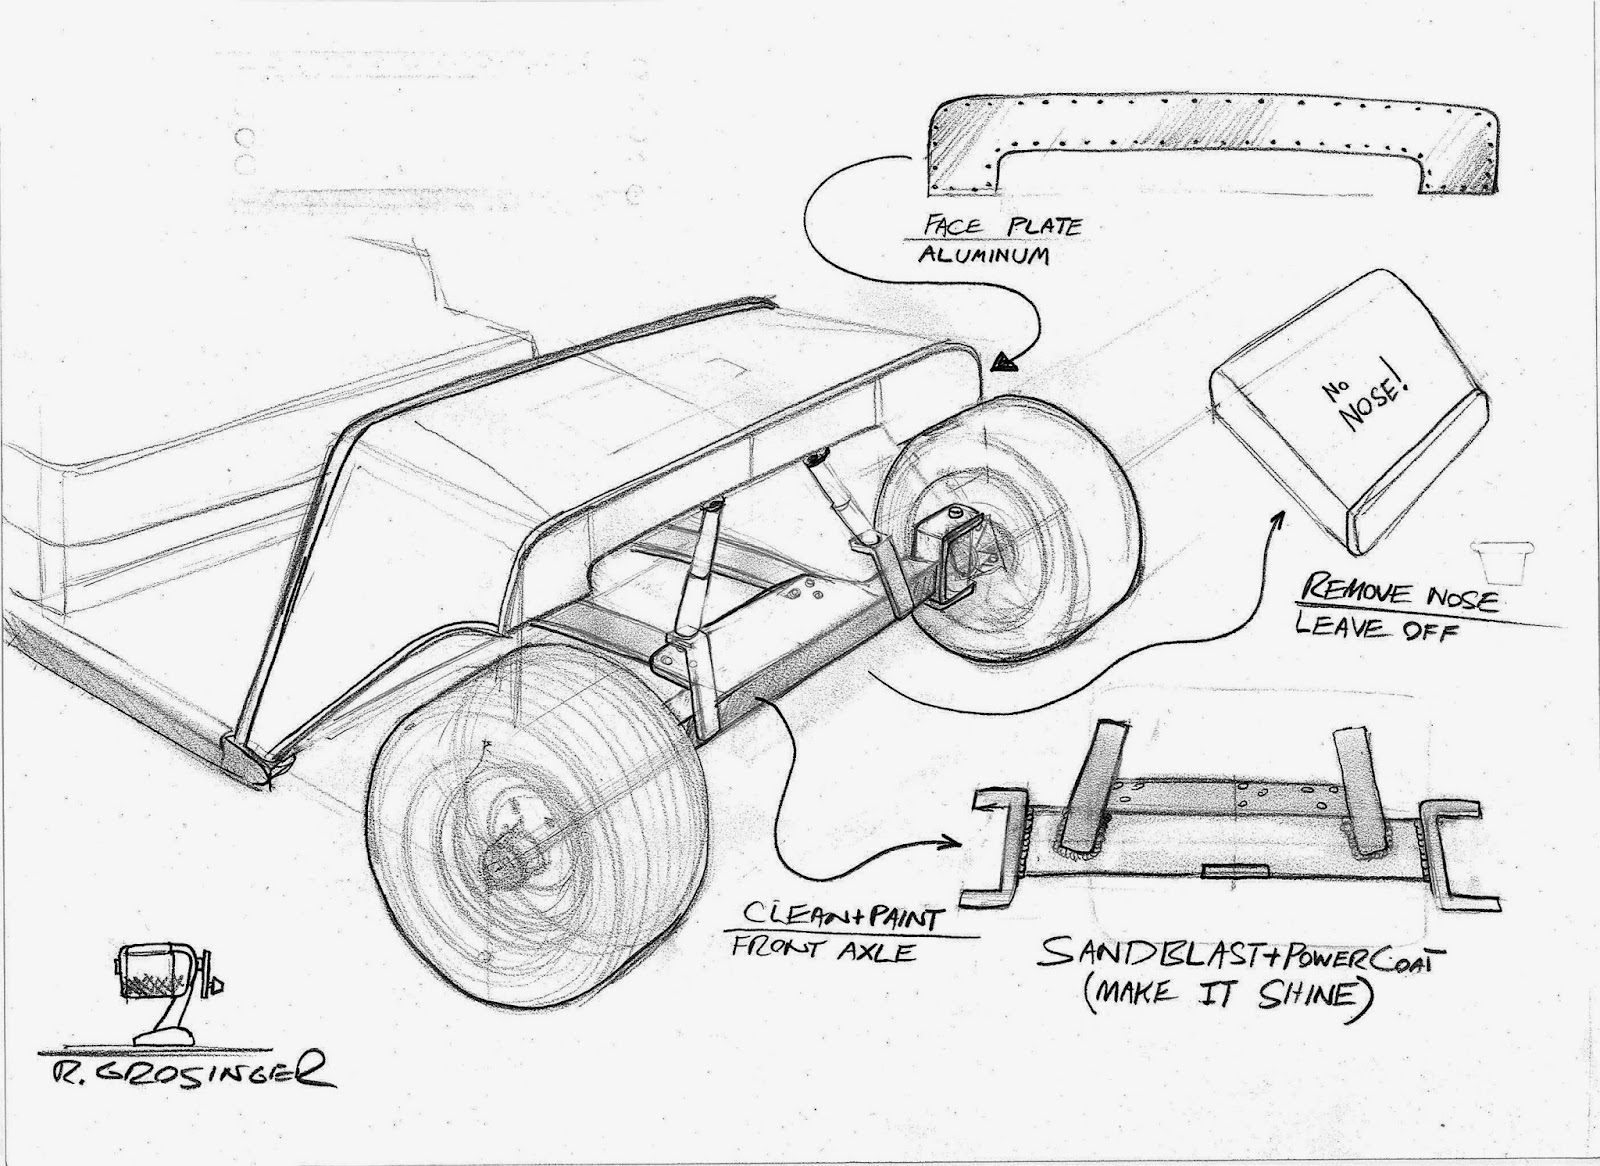 ron grosinger u0026 39 s vehicle design  electric wheelie golf cart